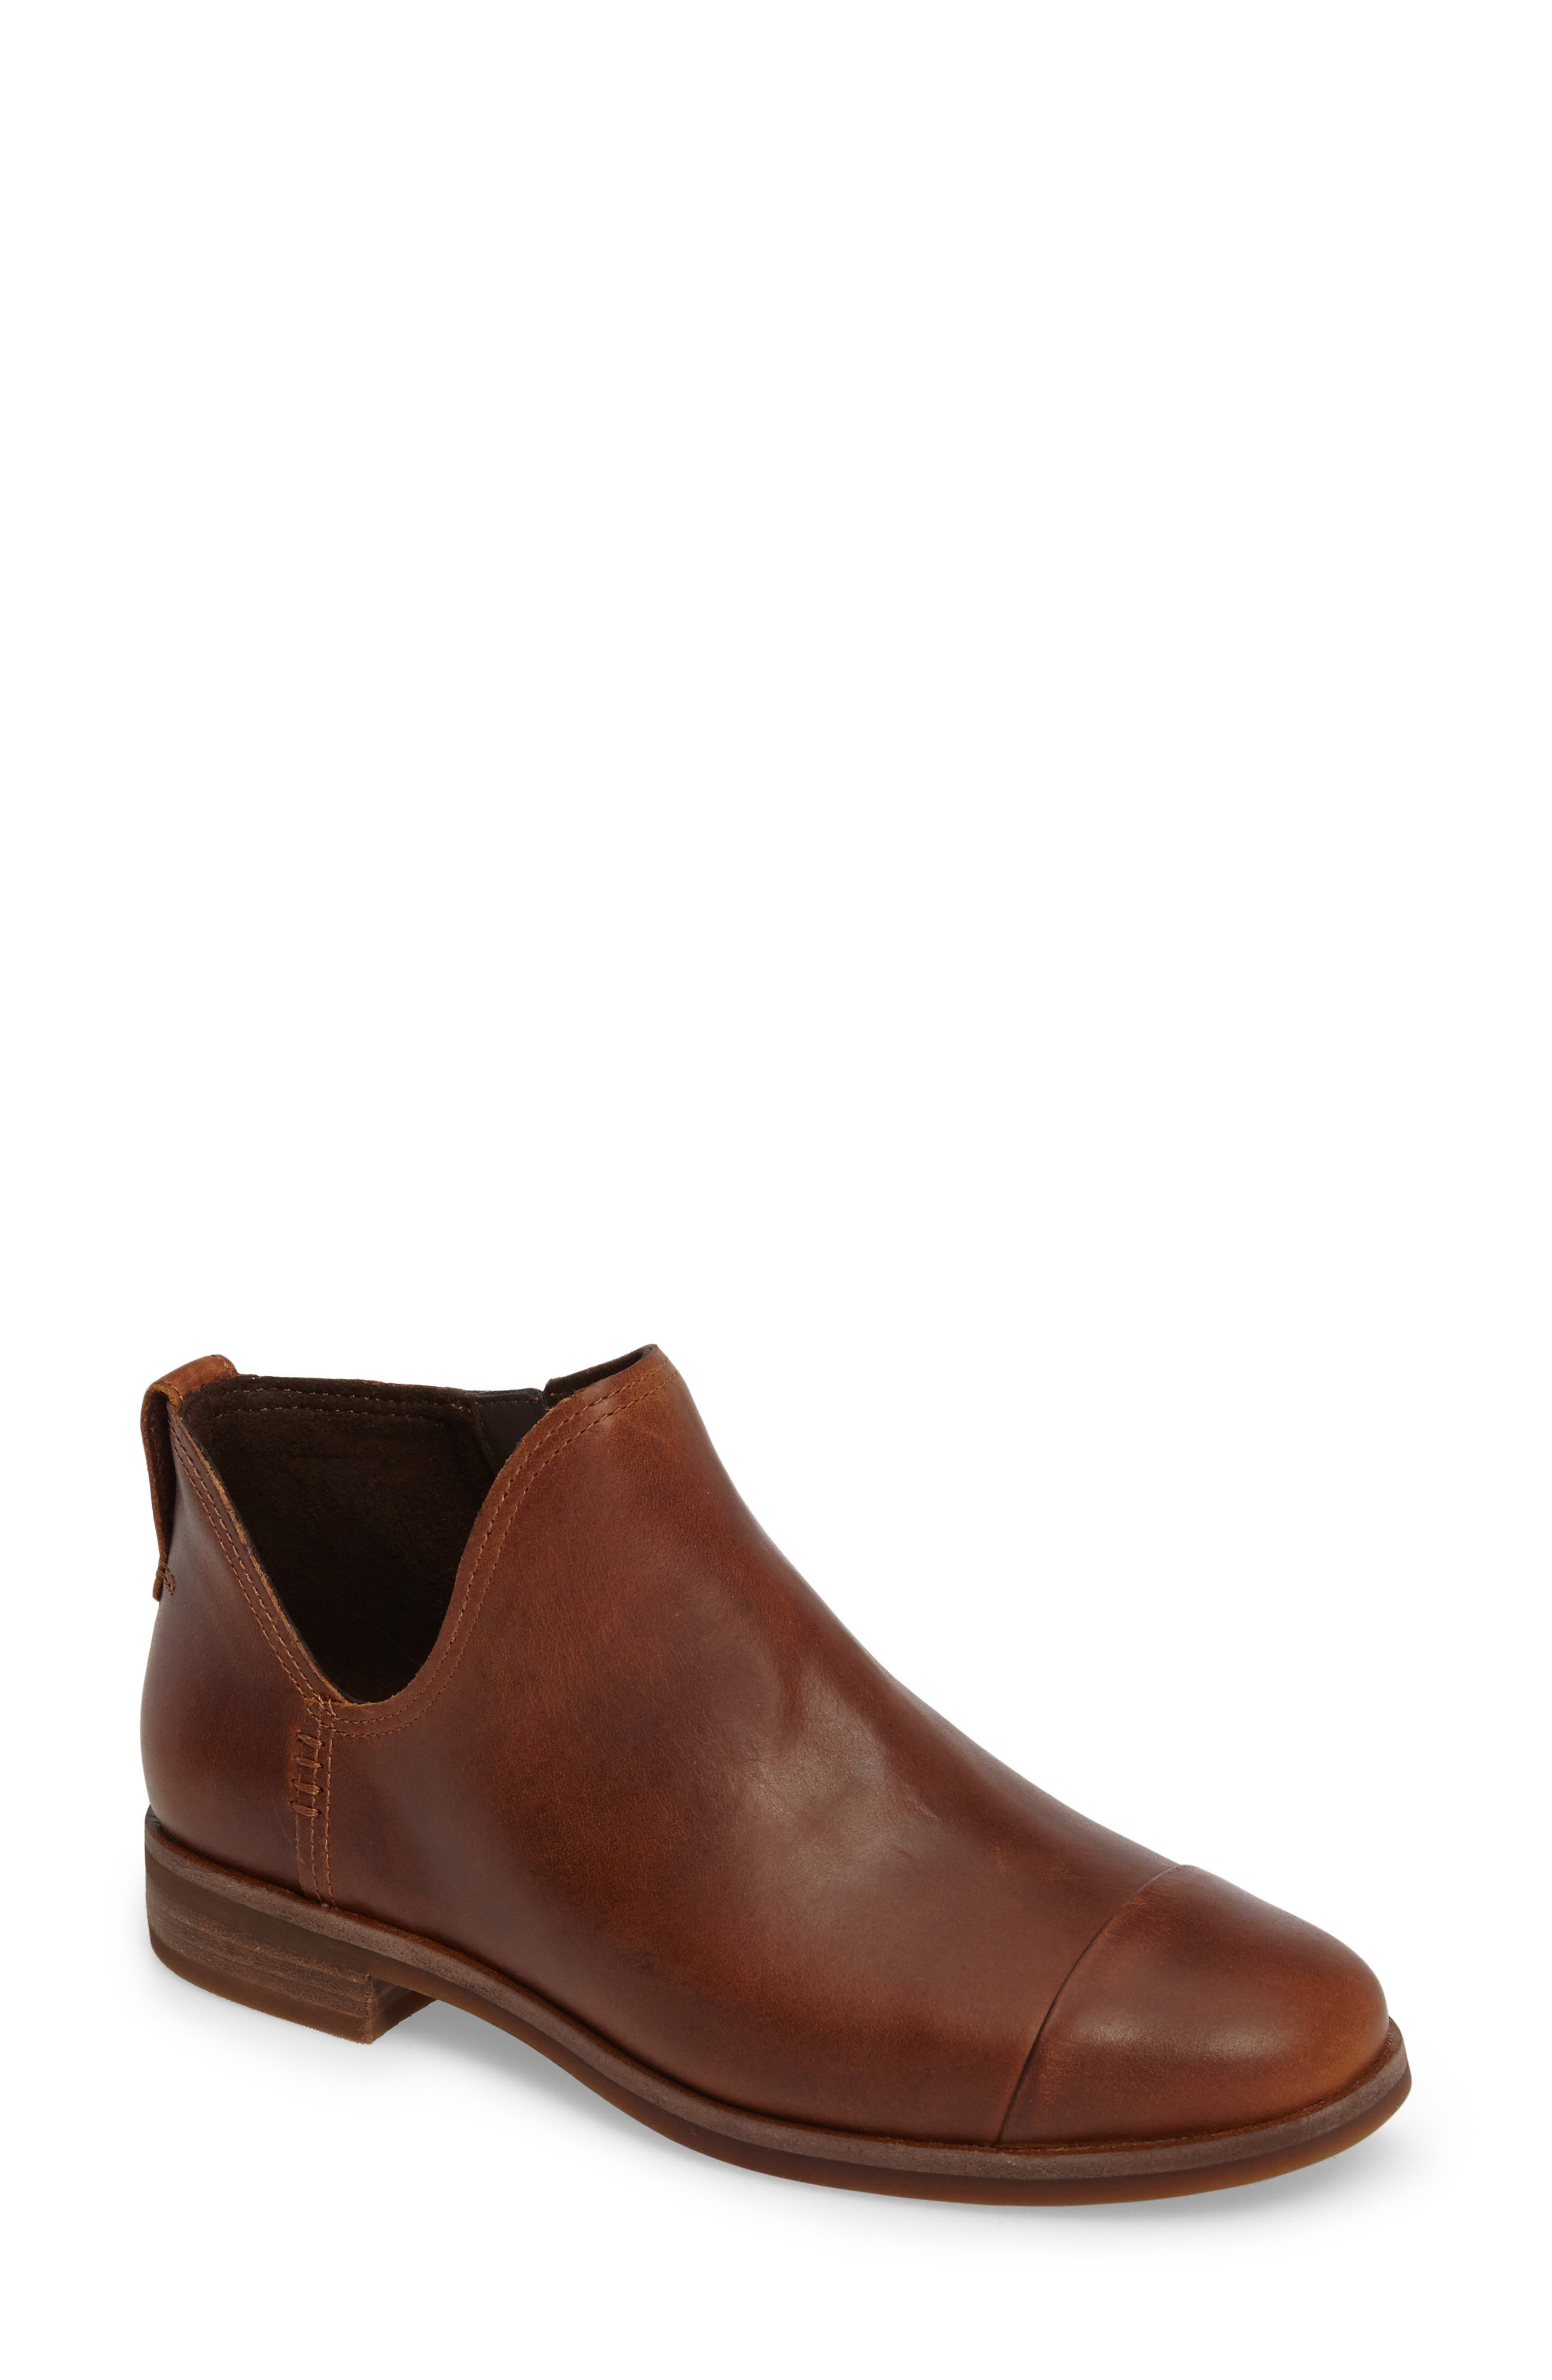 Main Image - Timberland Somers Falls Short Ankle Bootie (Women)